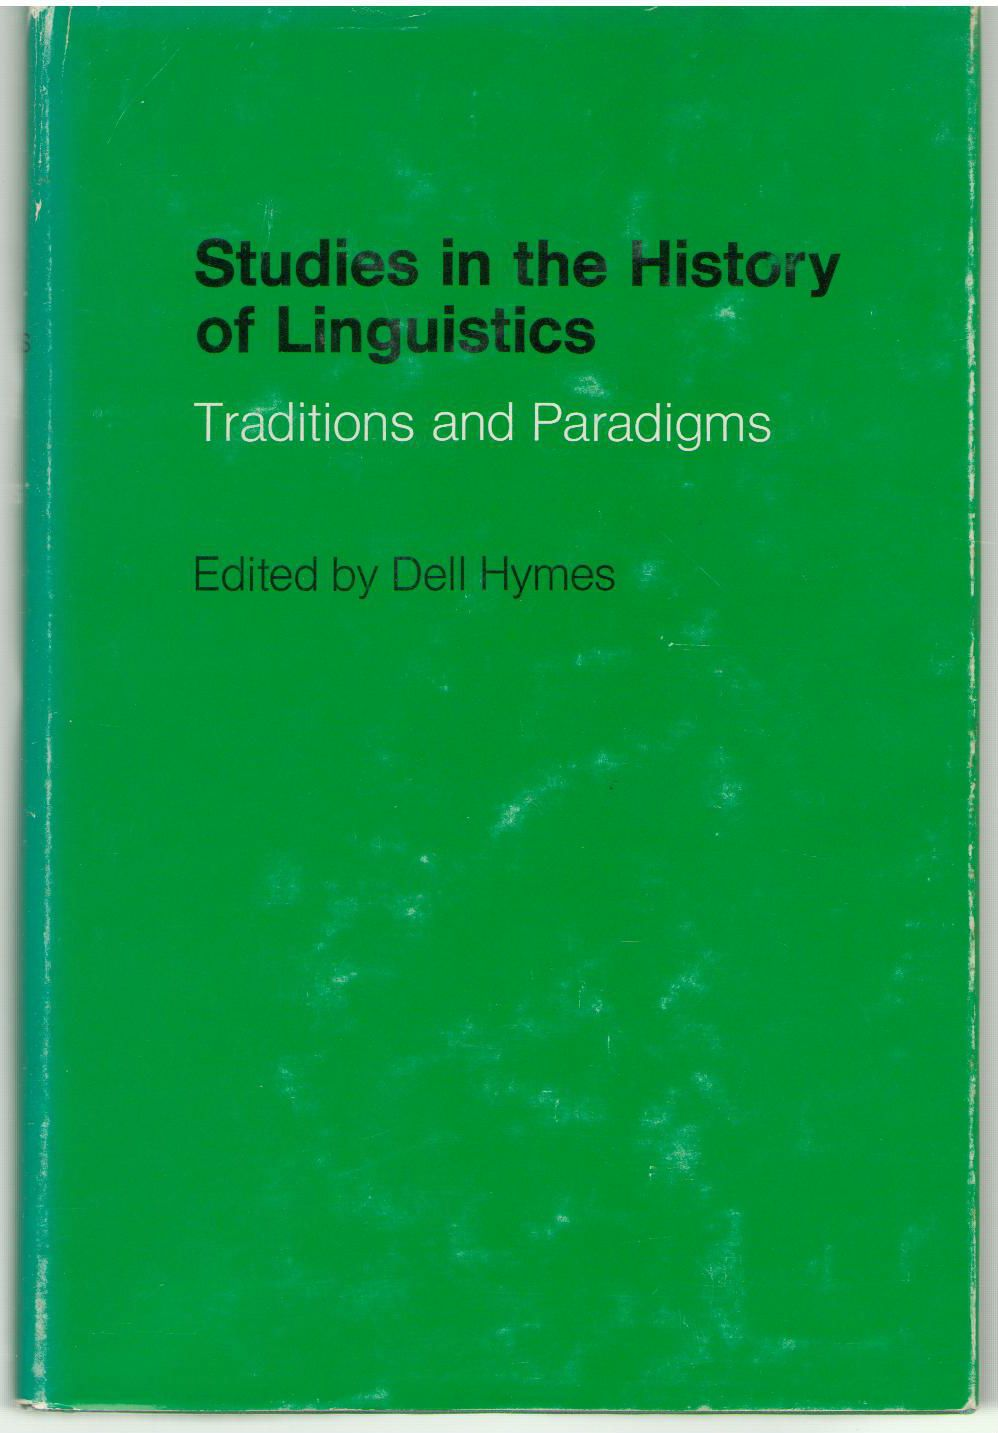 Studies in the History of Linguistics: Traditions and Paradigms (Indiana University Studies in the History and Theory of Linguistics)